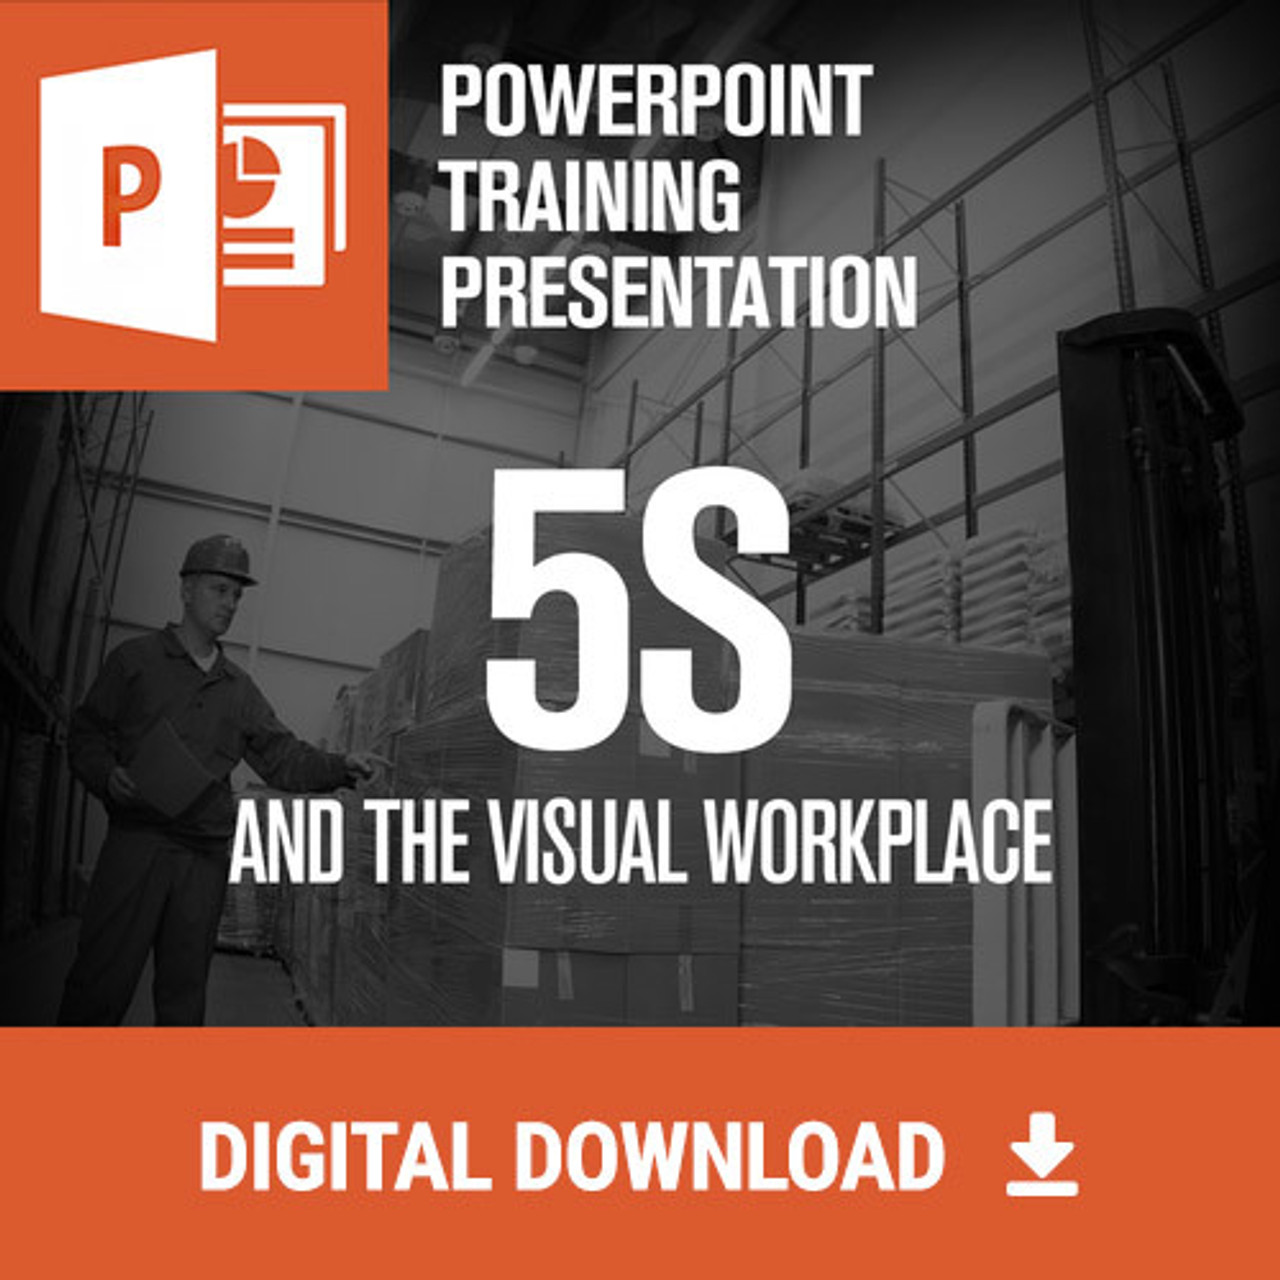 5S Powerpoint Training - Digital Download | 5S-Today